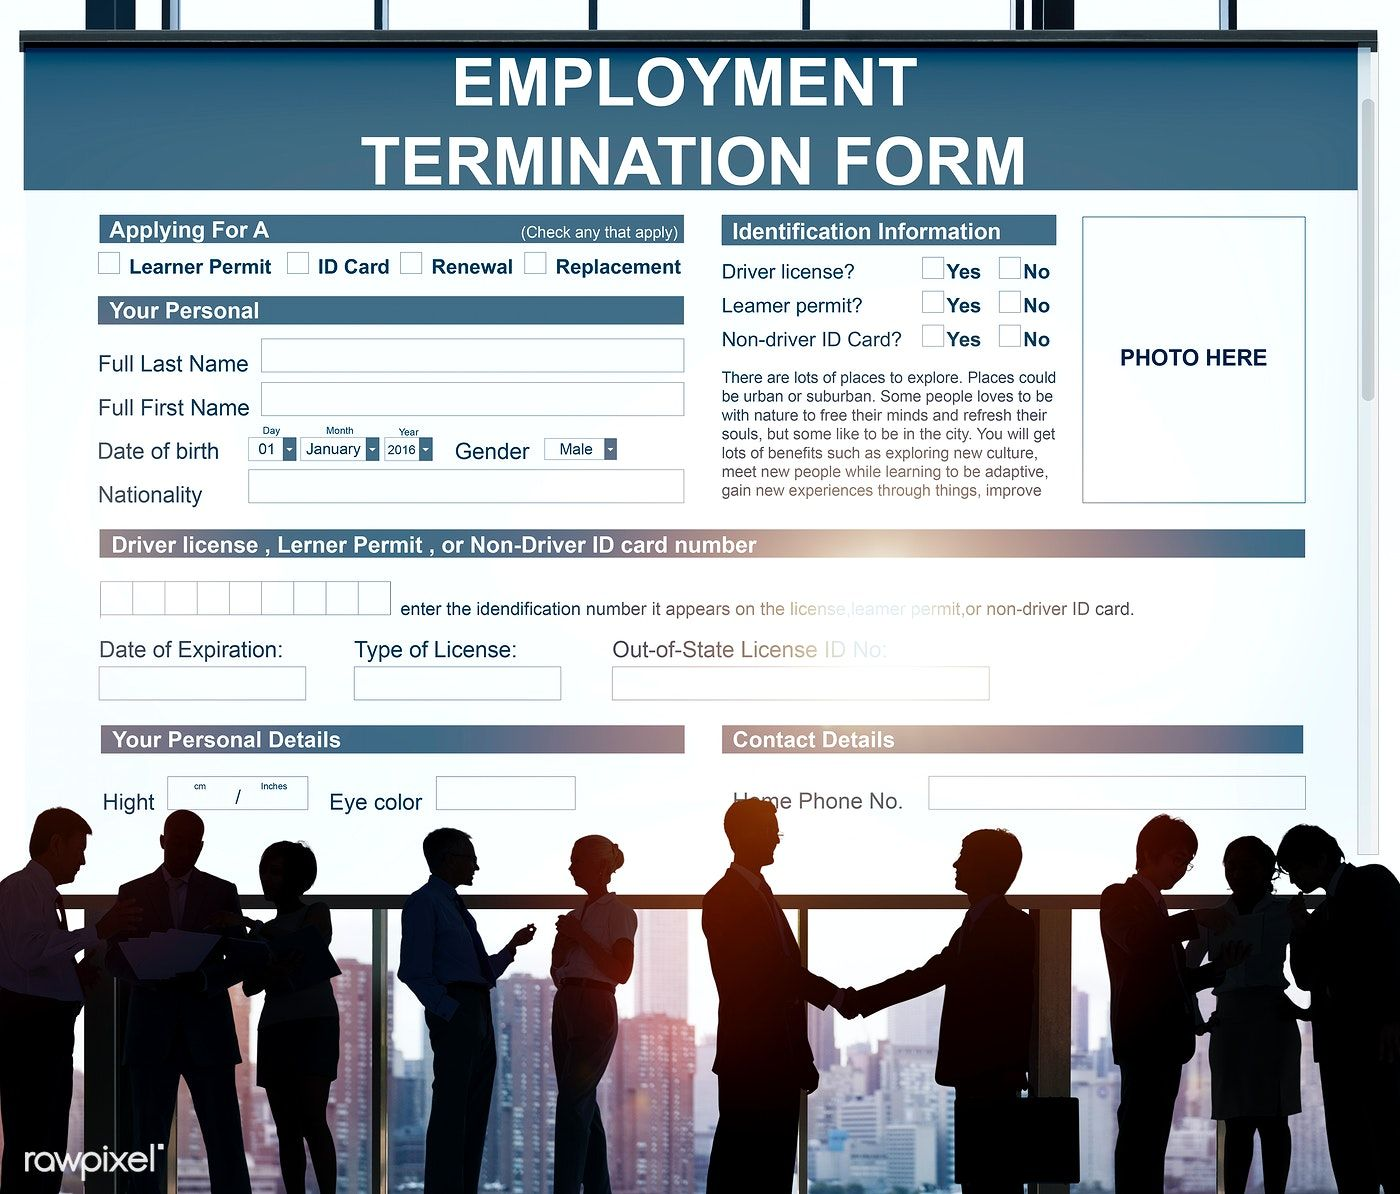 Employment Termination Form Contract Concept free image